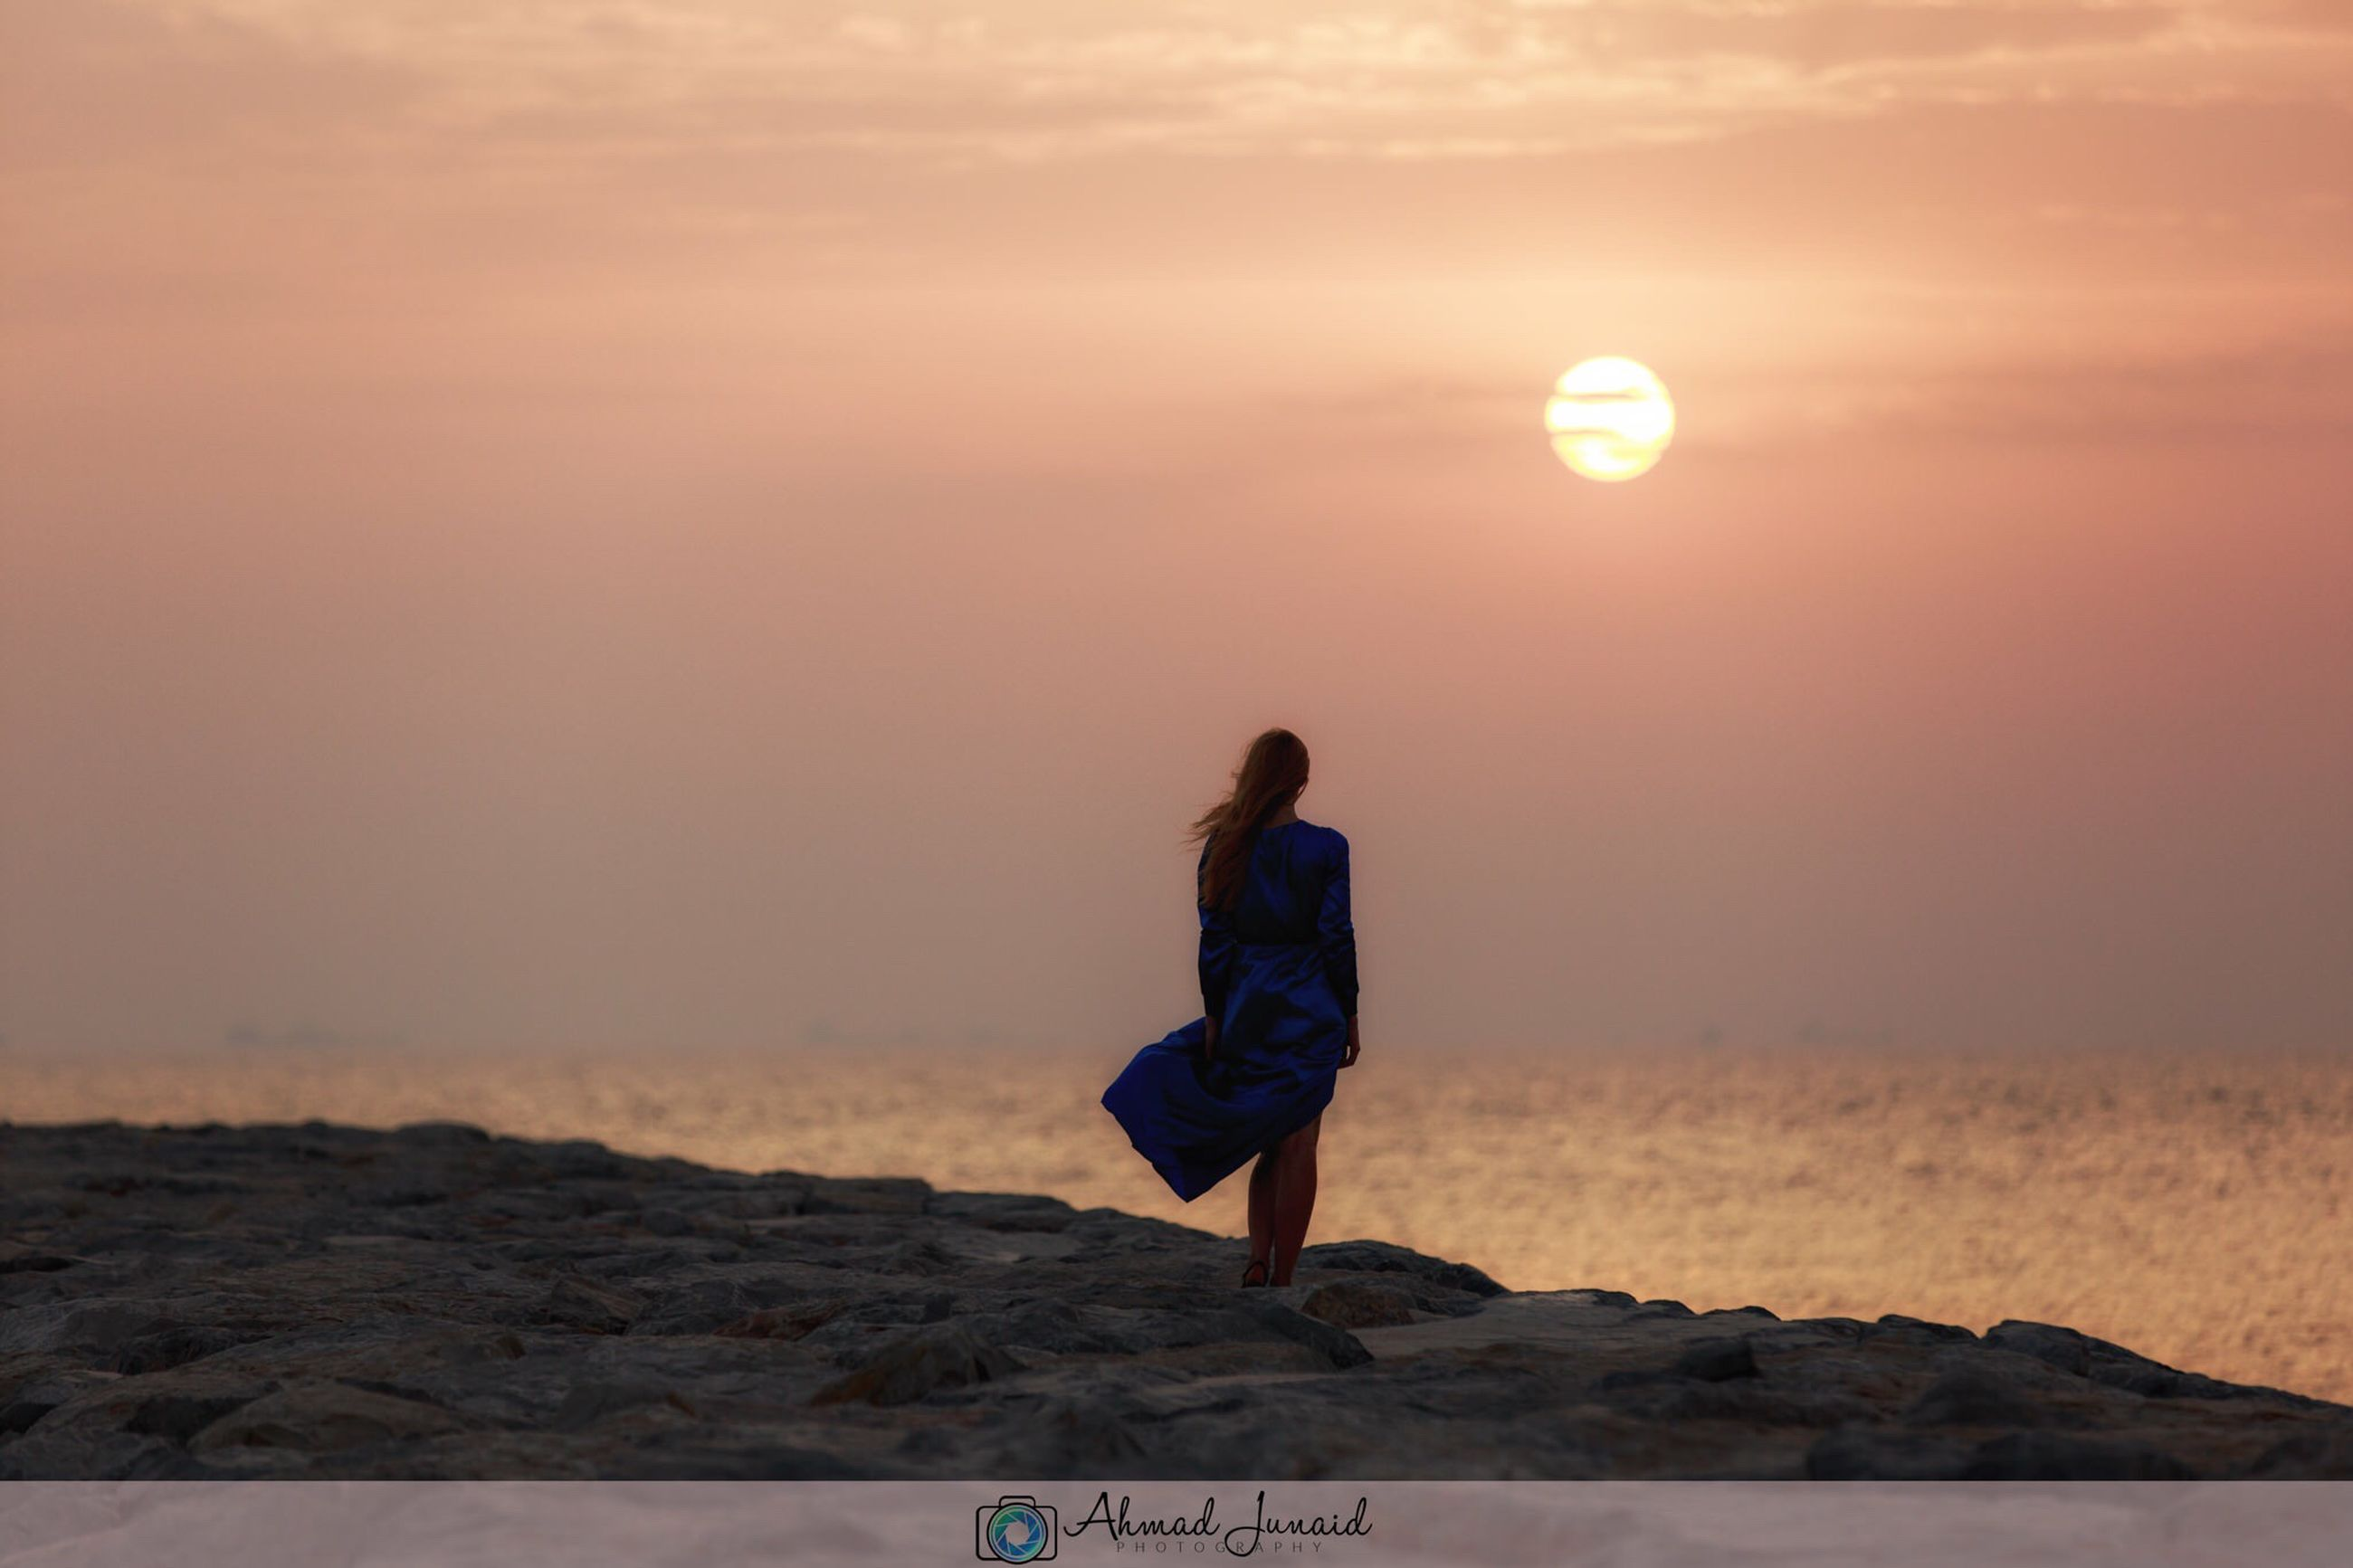 sunset, sun, sunlight, scenics, tranquil scene, men, beauty in nature, full length, water, sky, orange color, nature, tranquility, vacations, majestic, tourism, sea, cloud - sky, getting away from it all, loneliness, distant